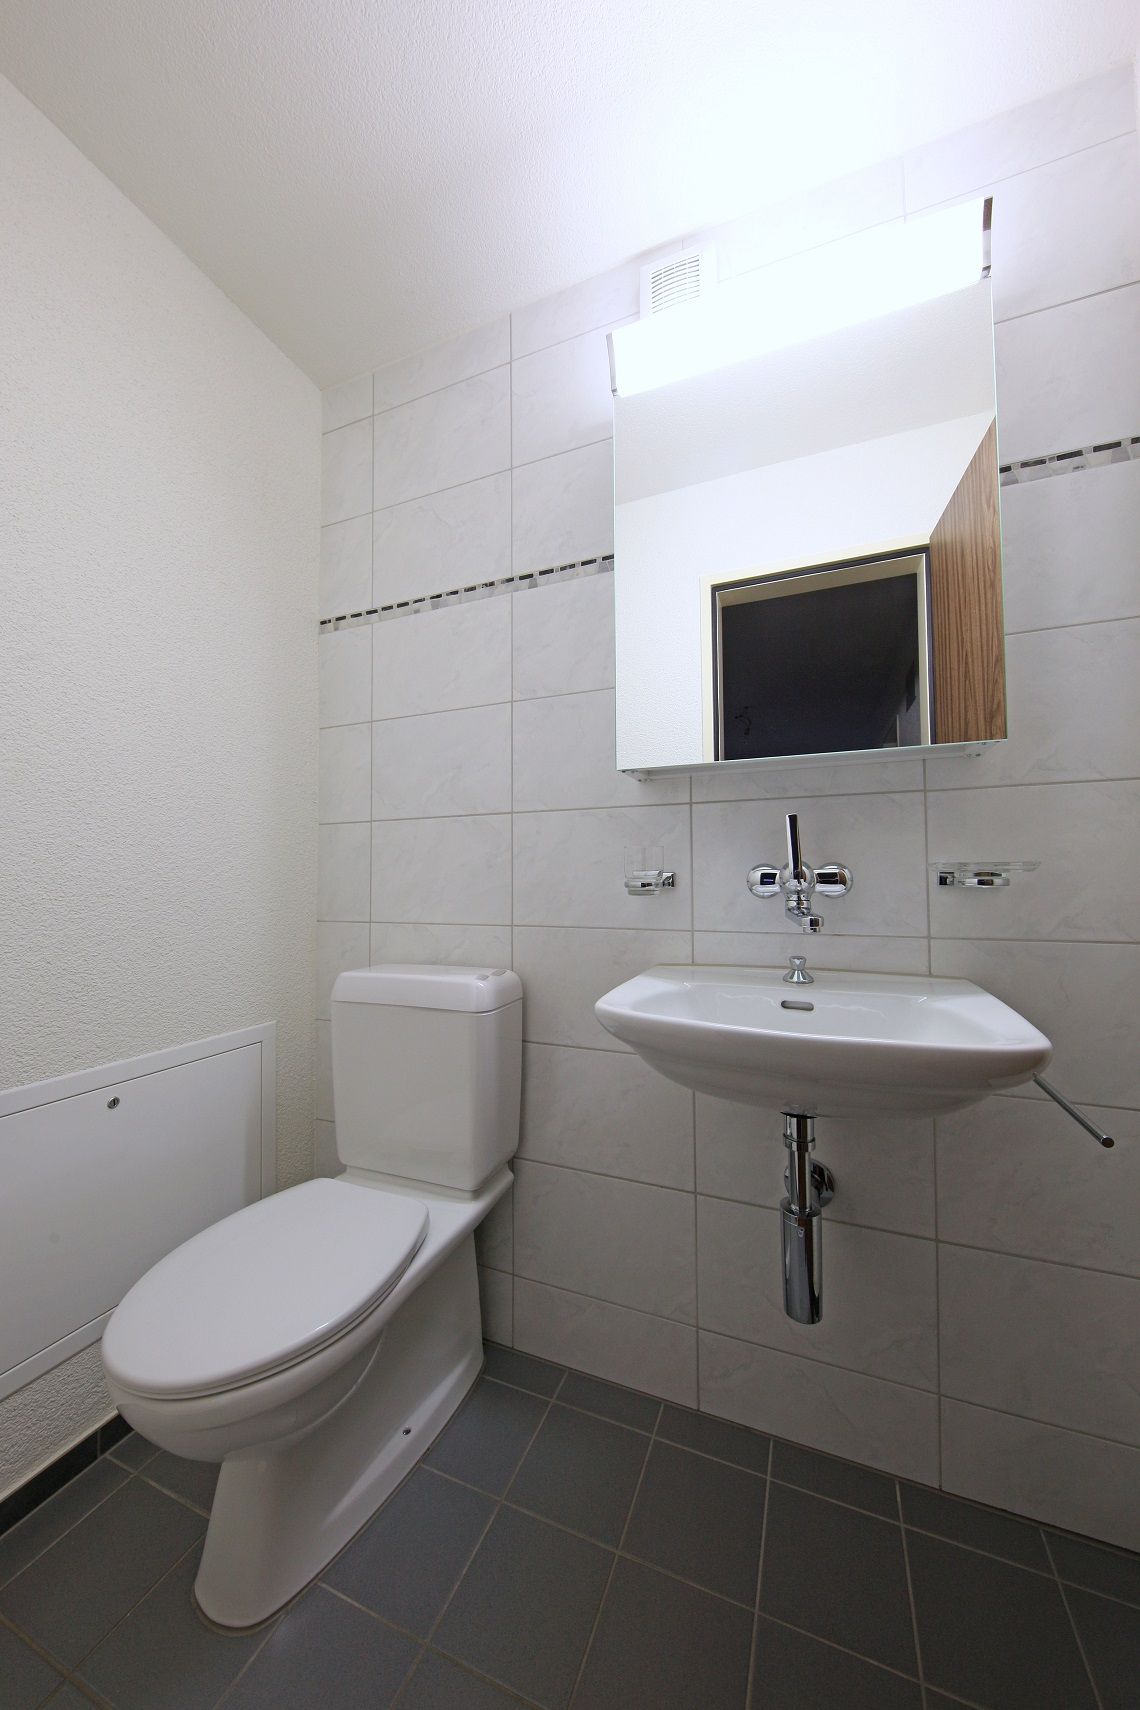 7_Obersee_Immobilien_WC